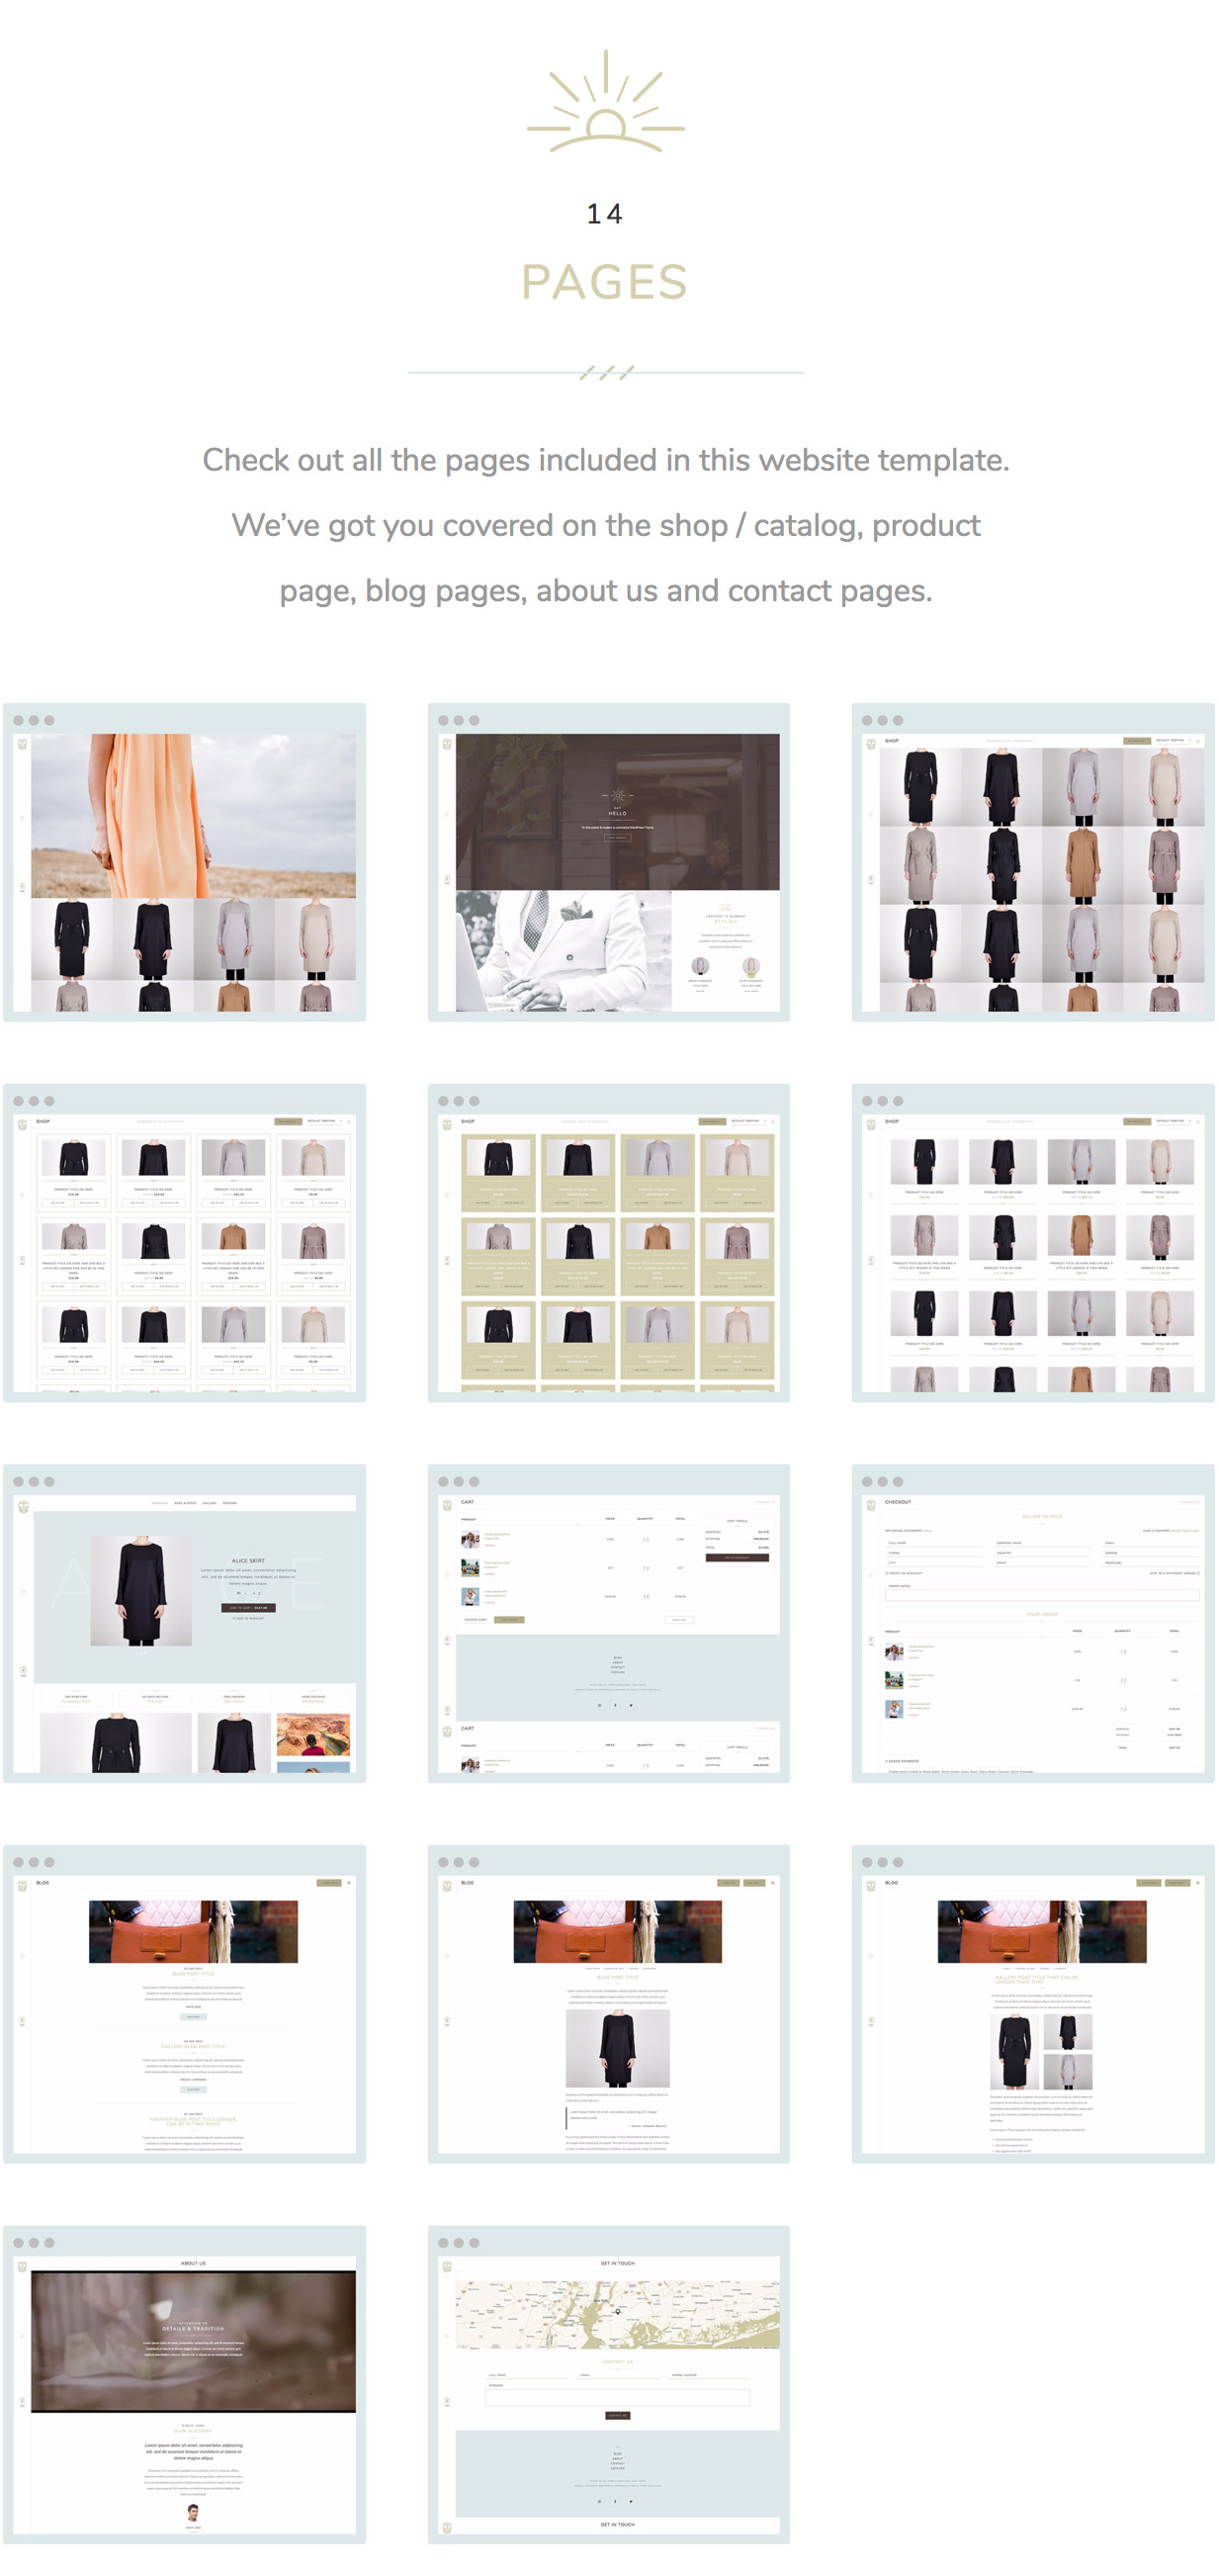 TS - Fashion & Apparel Store Website Template - 2